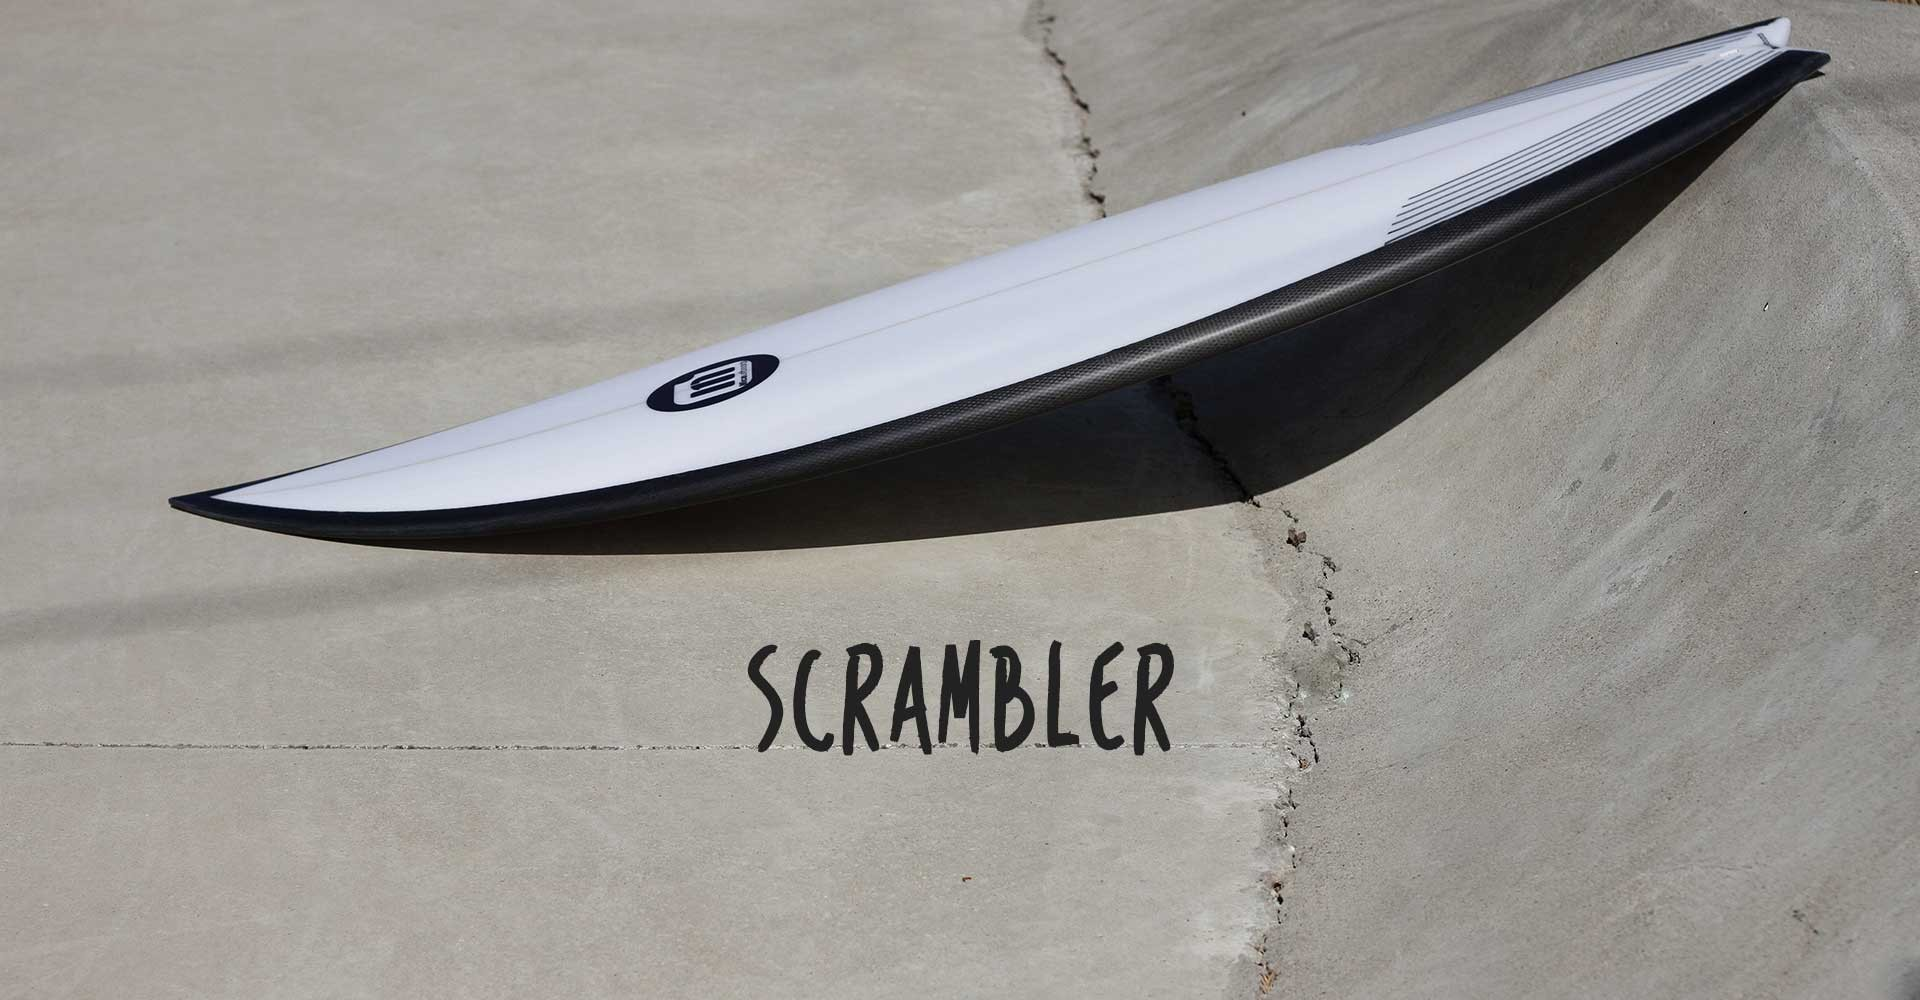 Micasurfboards high performance board for small waves with swallow tail, single concave bottom.